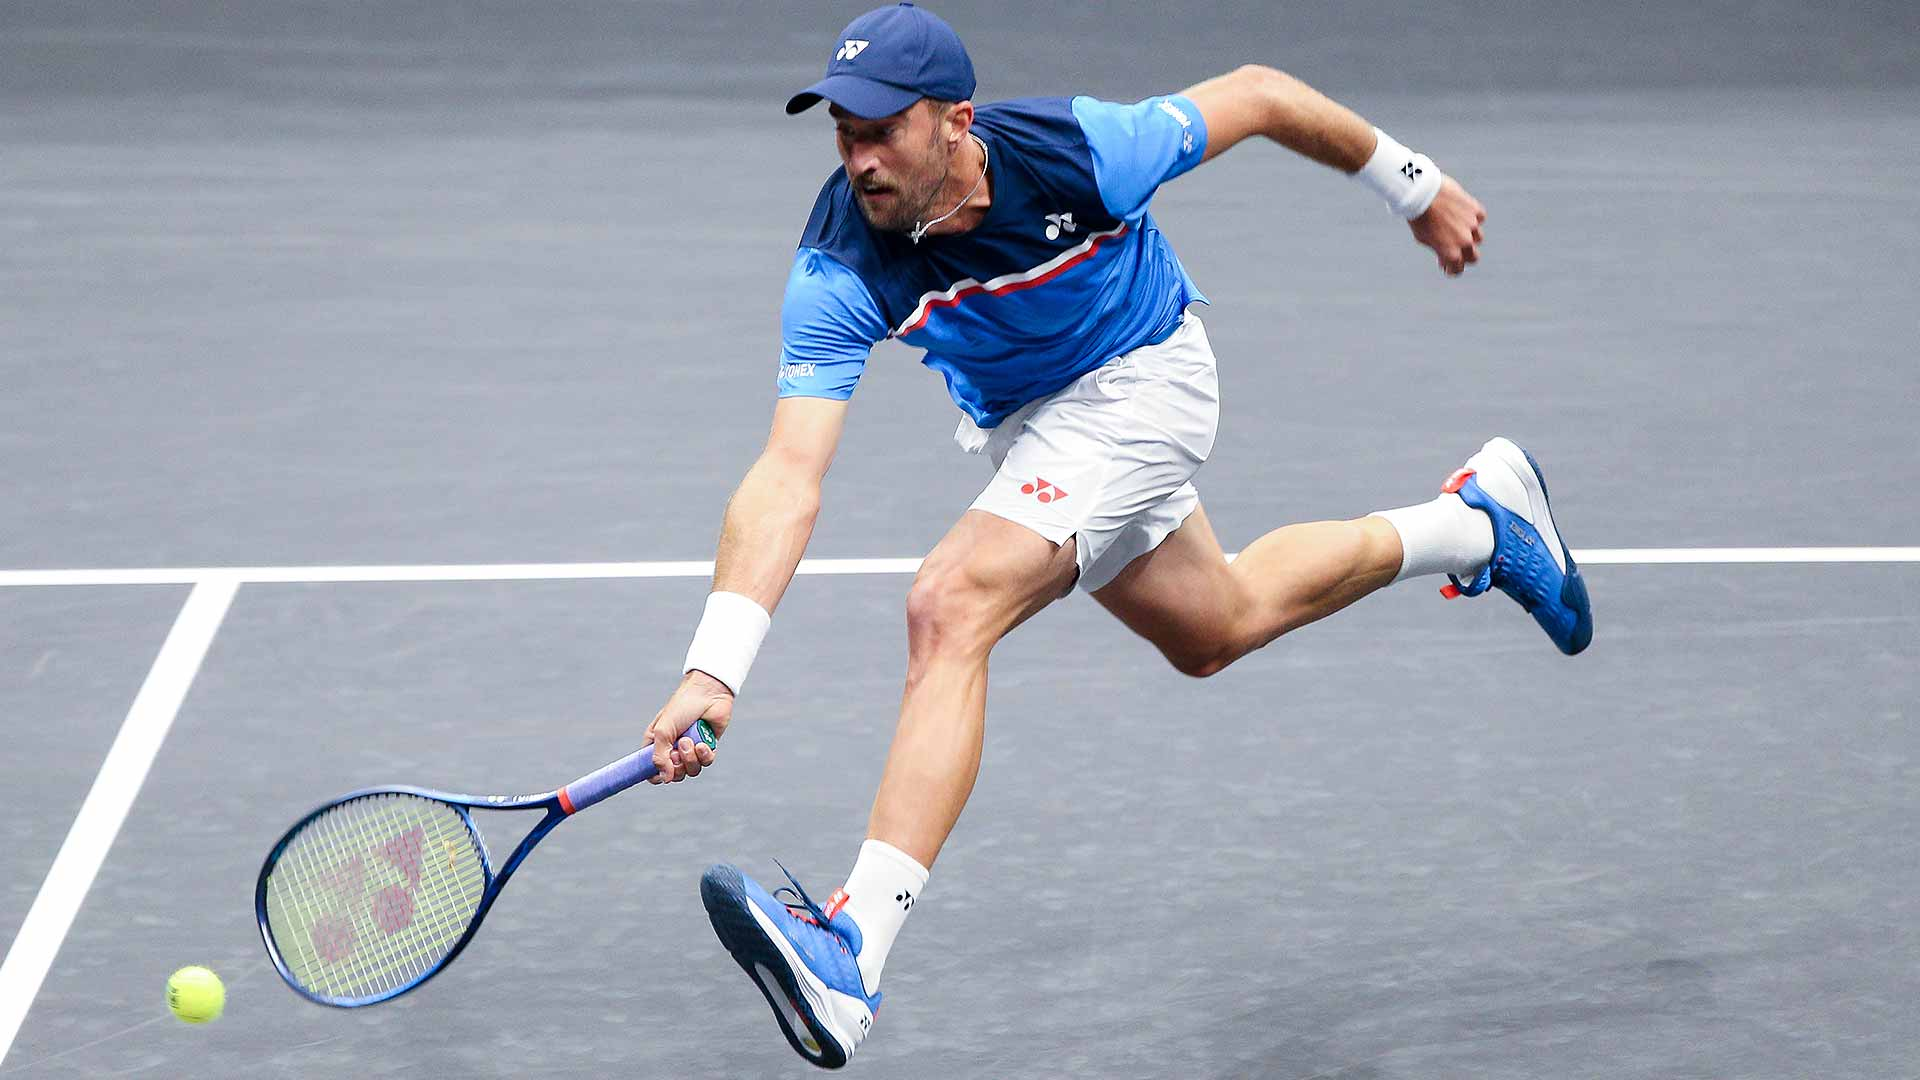 Steve Johnson improves to 2-0 against Tennys Sandgren on Monday at the New York Open.